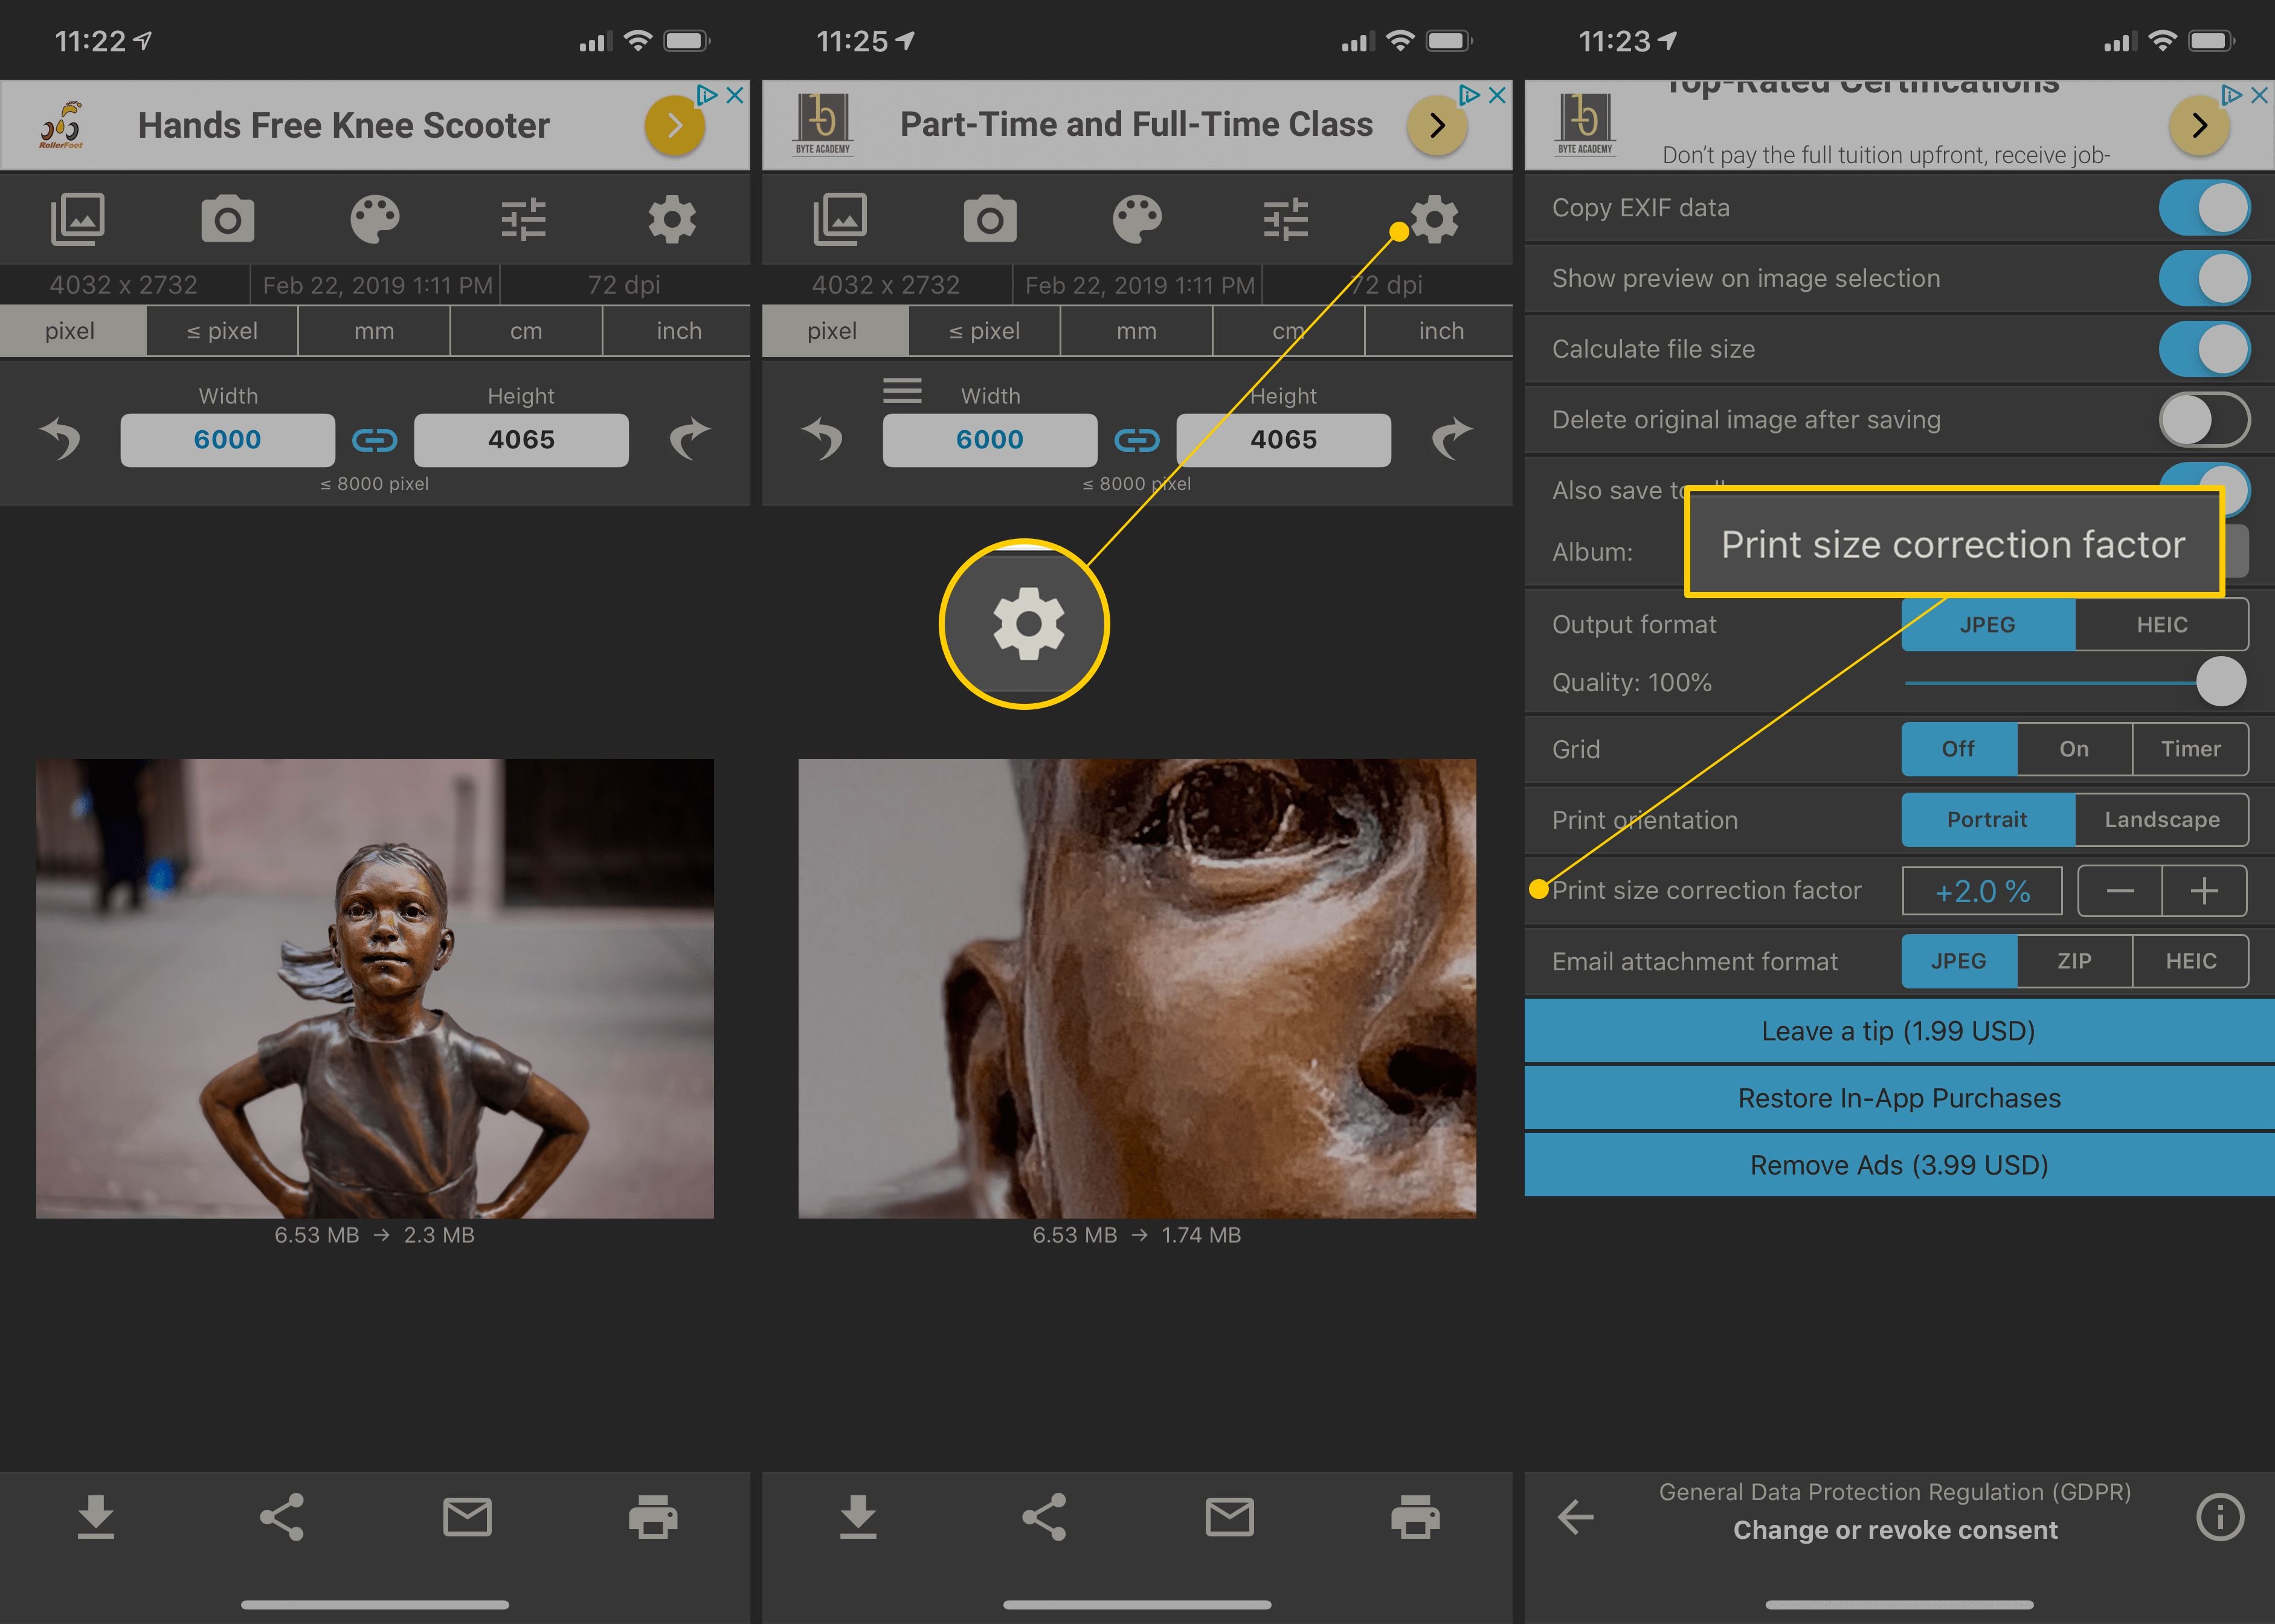 How To Make High Resolution Images On Your Computer Or Smartphone